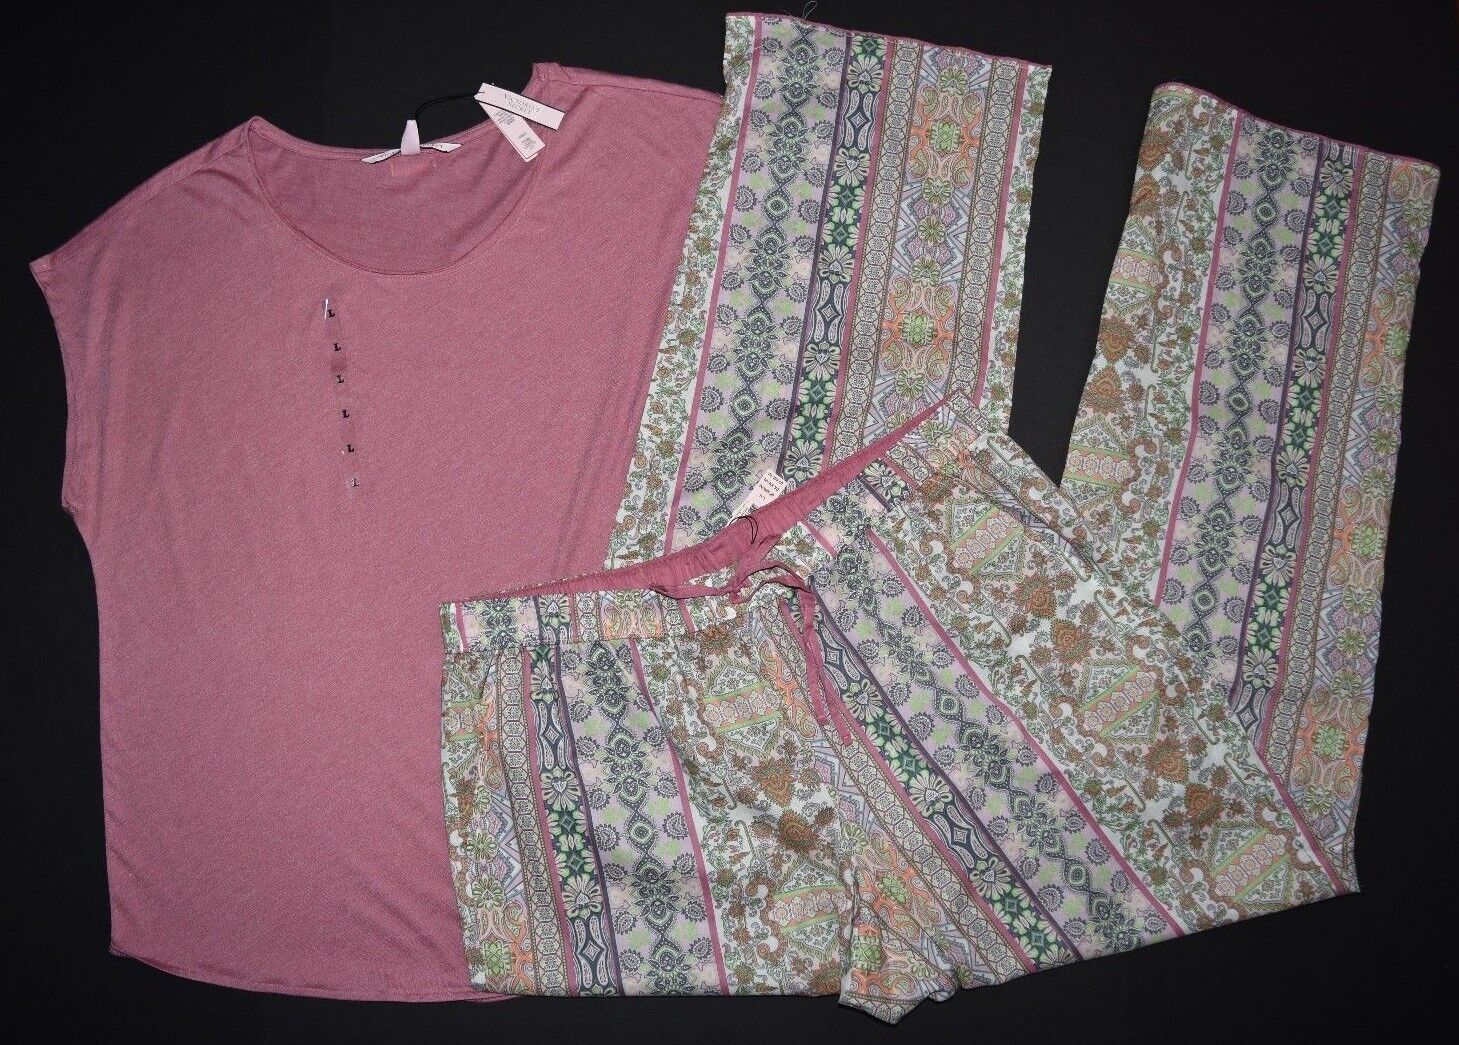 VICTORIA'S SECRET SLEEVELESS TOP   MULTI PRINTED MAYFAIR PANTS PAJAMA SET LARGE